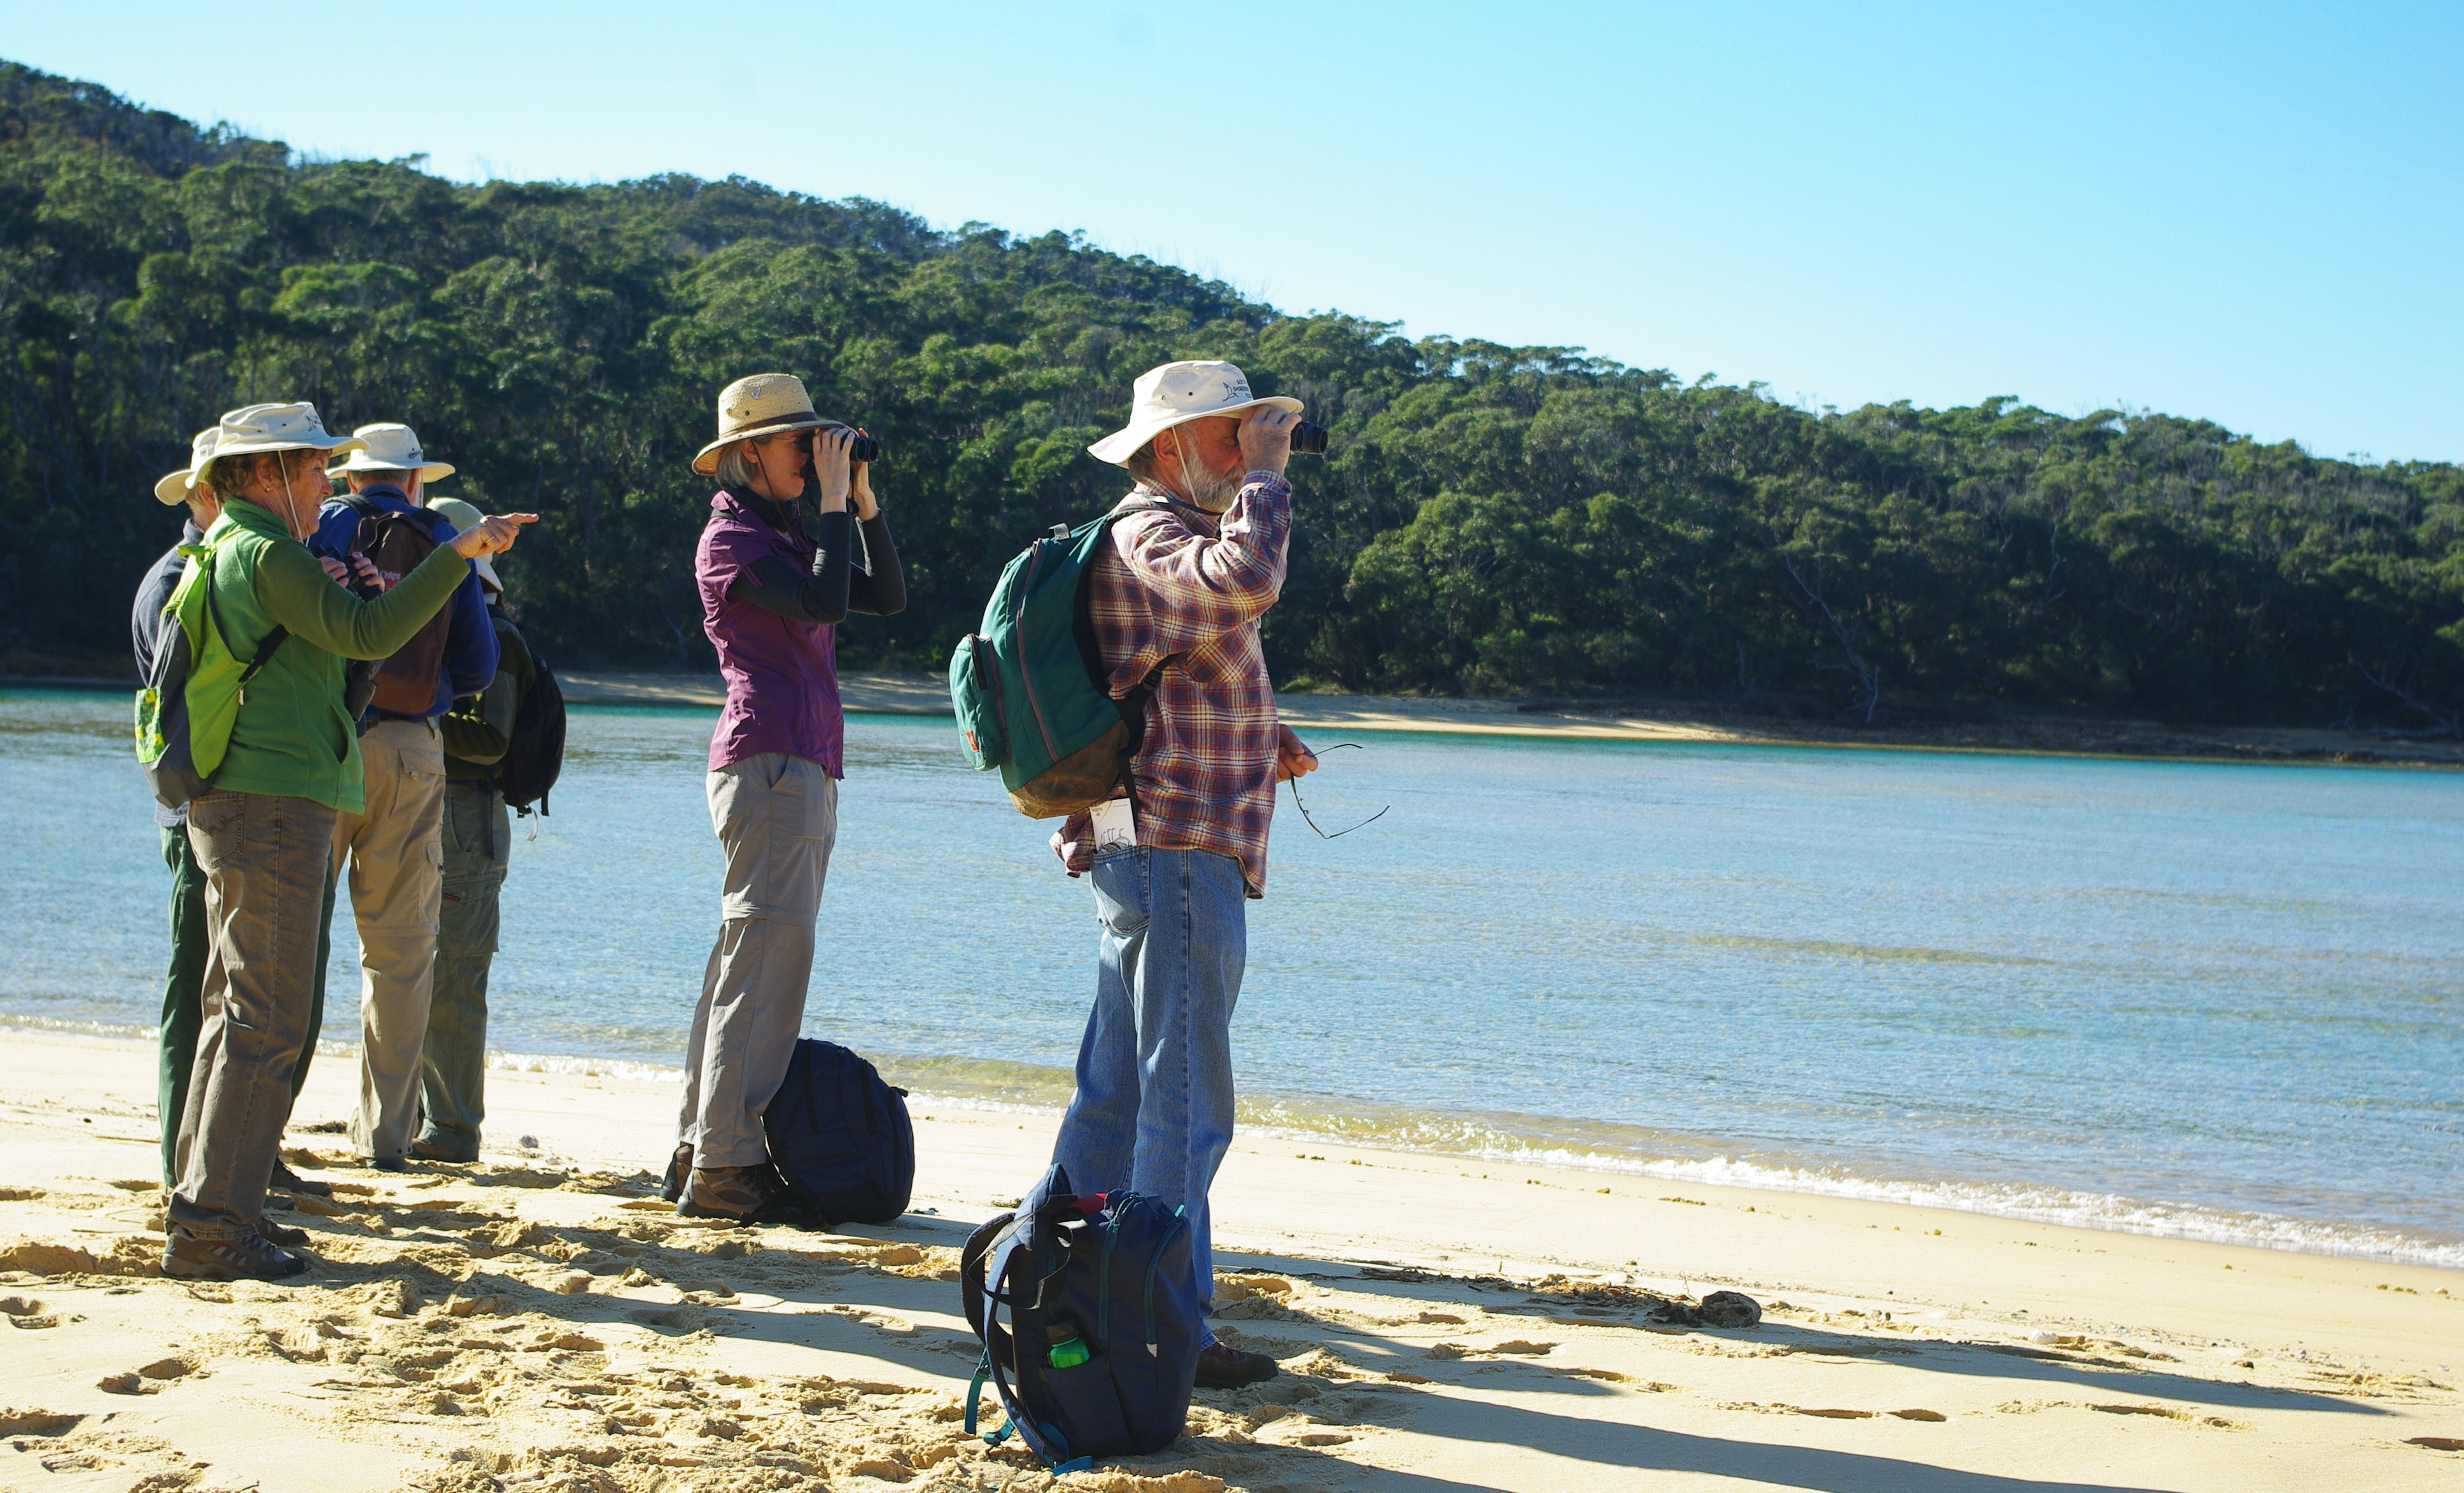 Shorebird survey group. Photo: L Brown.